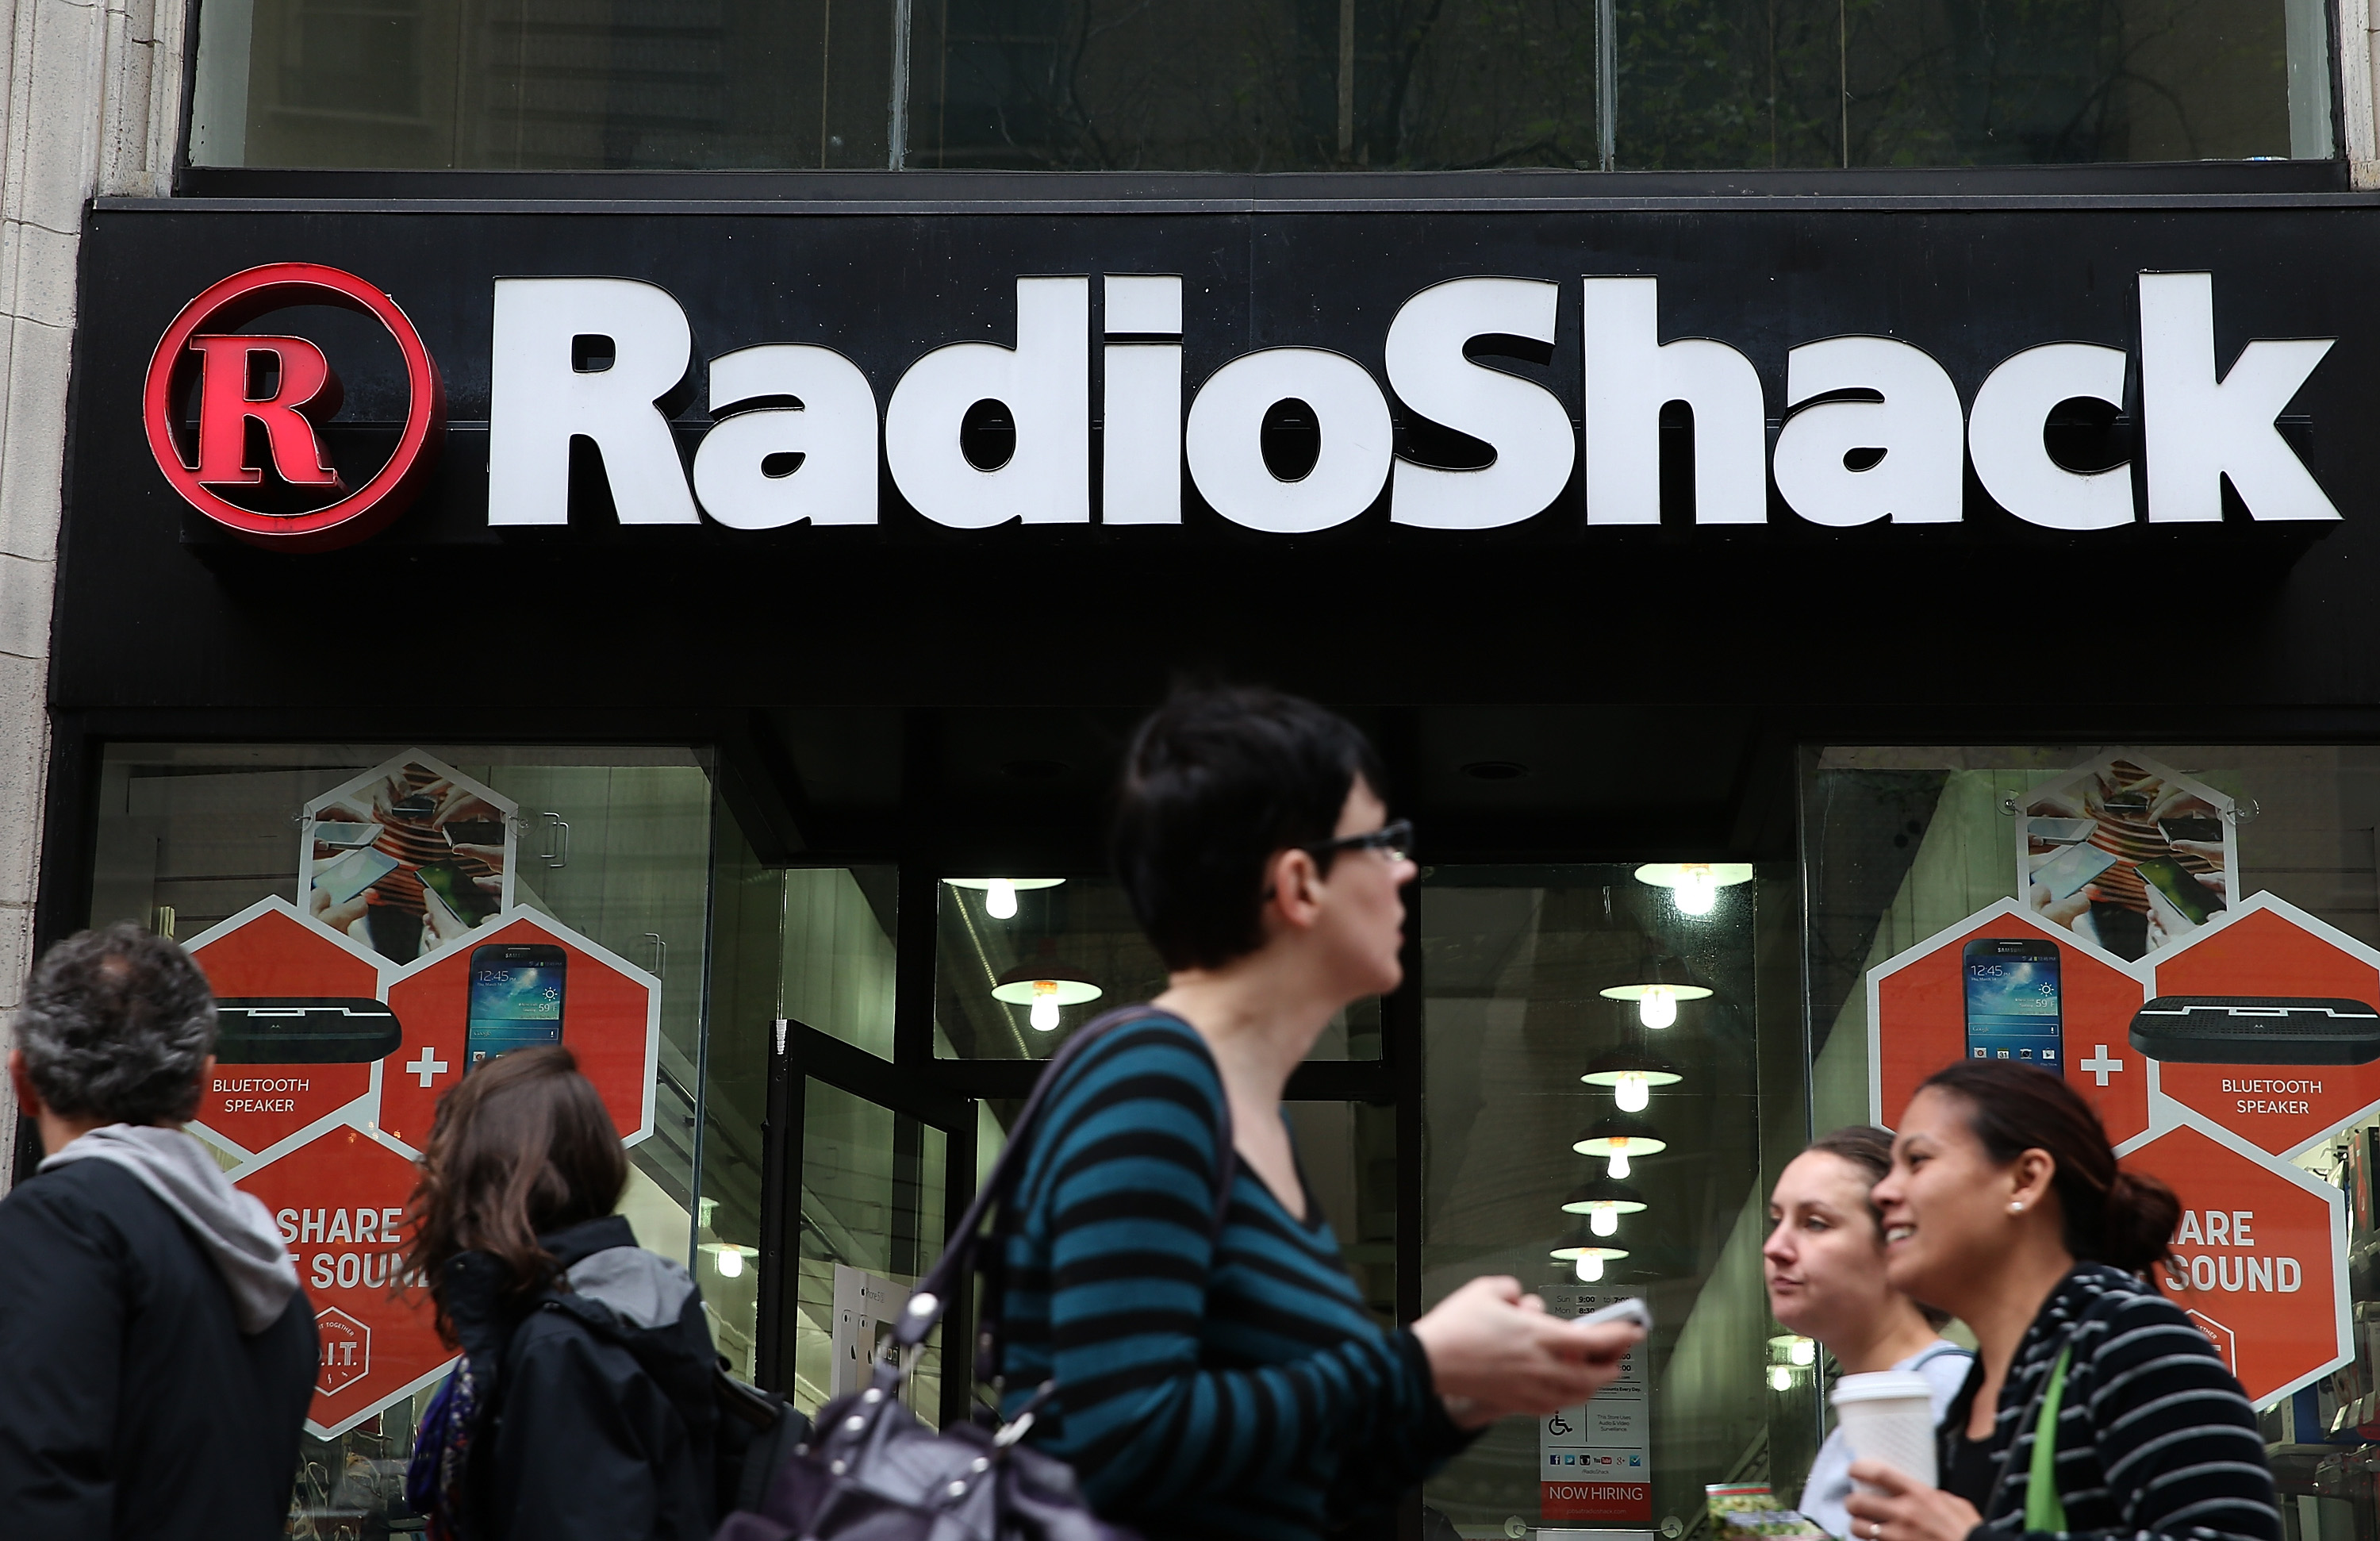 People walk by a Radio Shack store on March 4, 2014 in San Francisco, California.